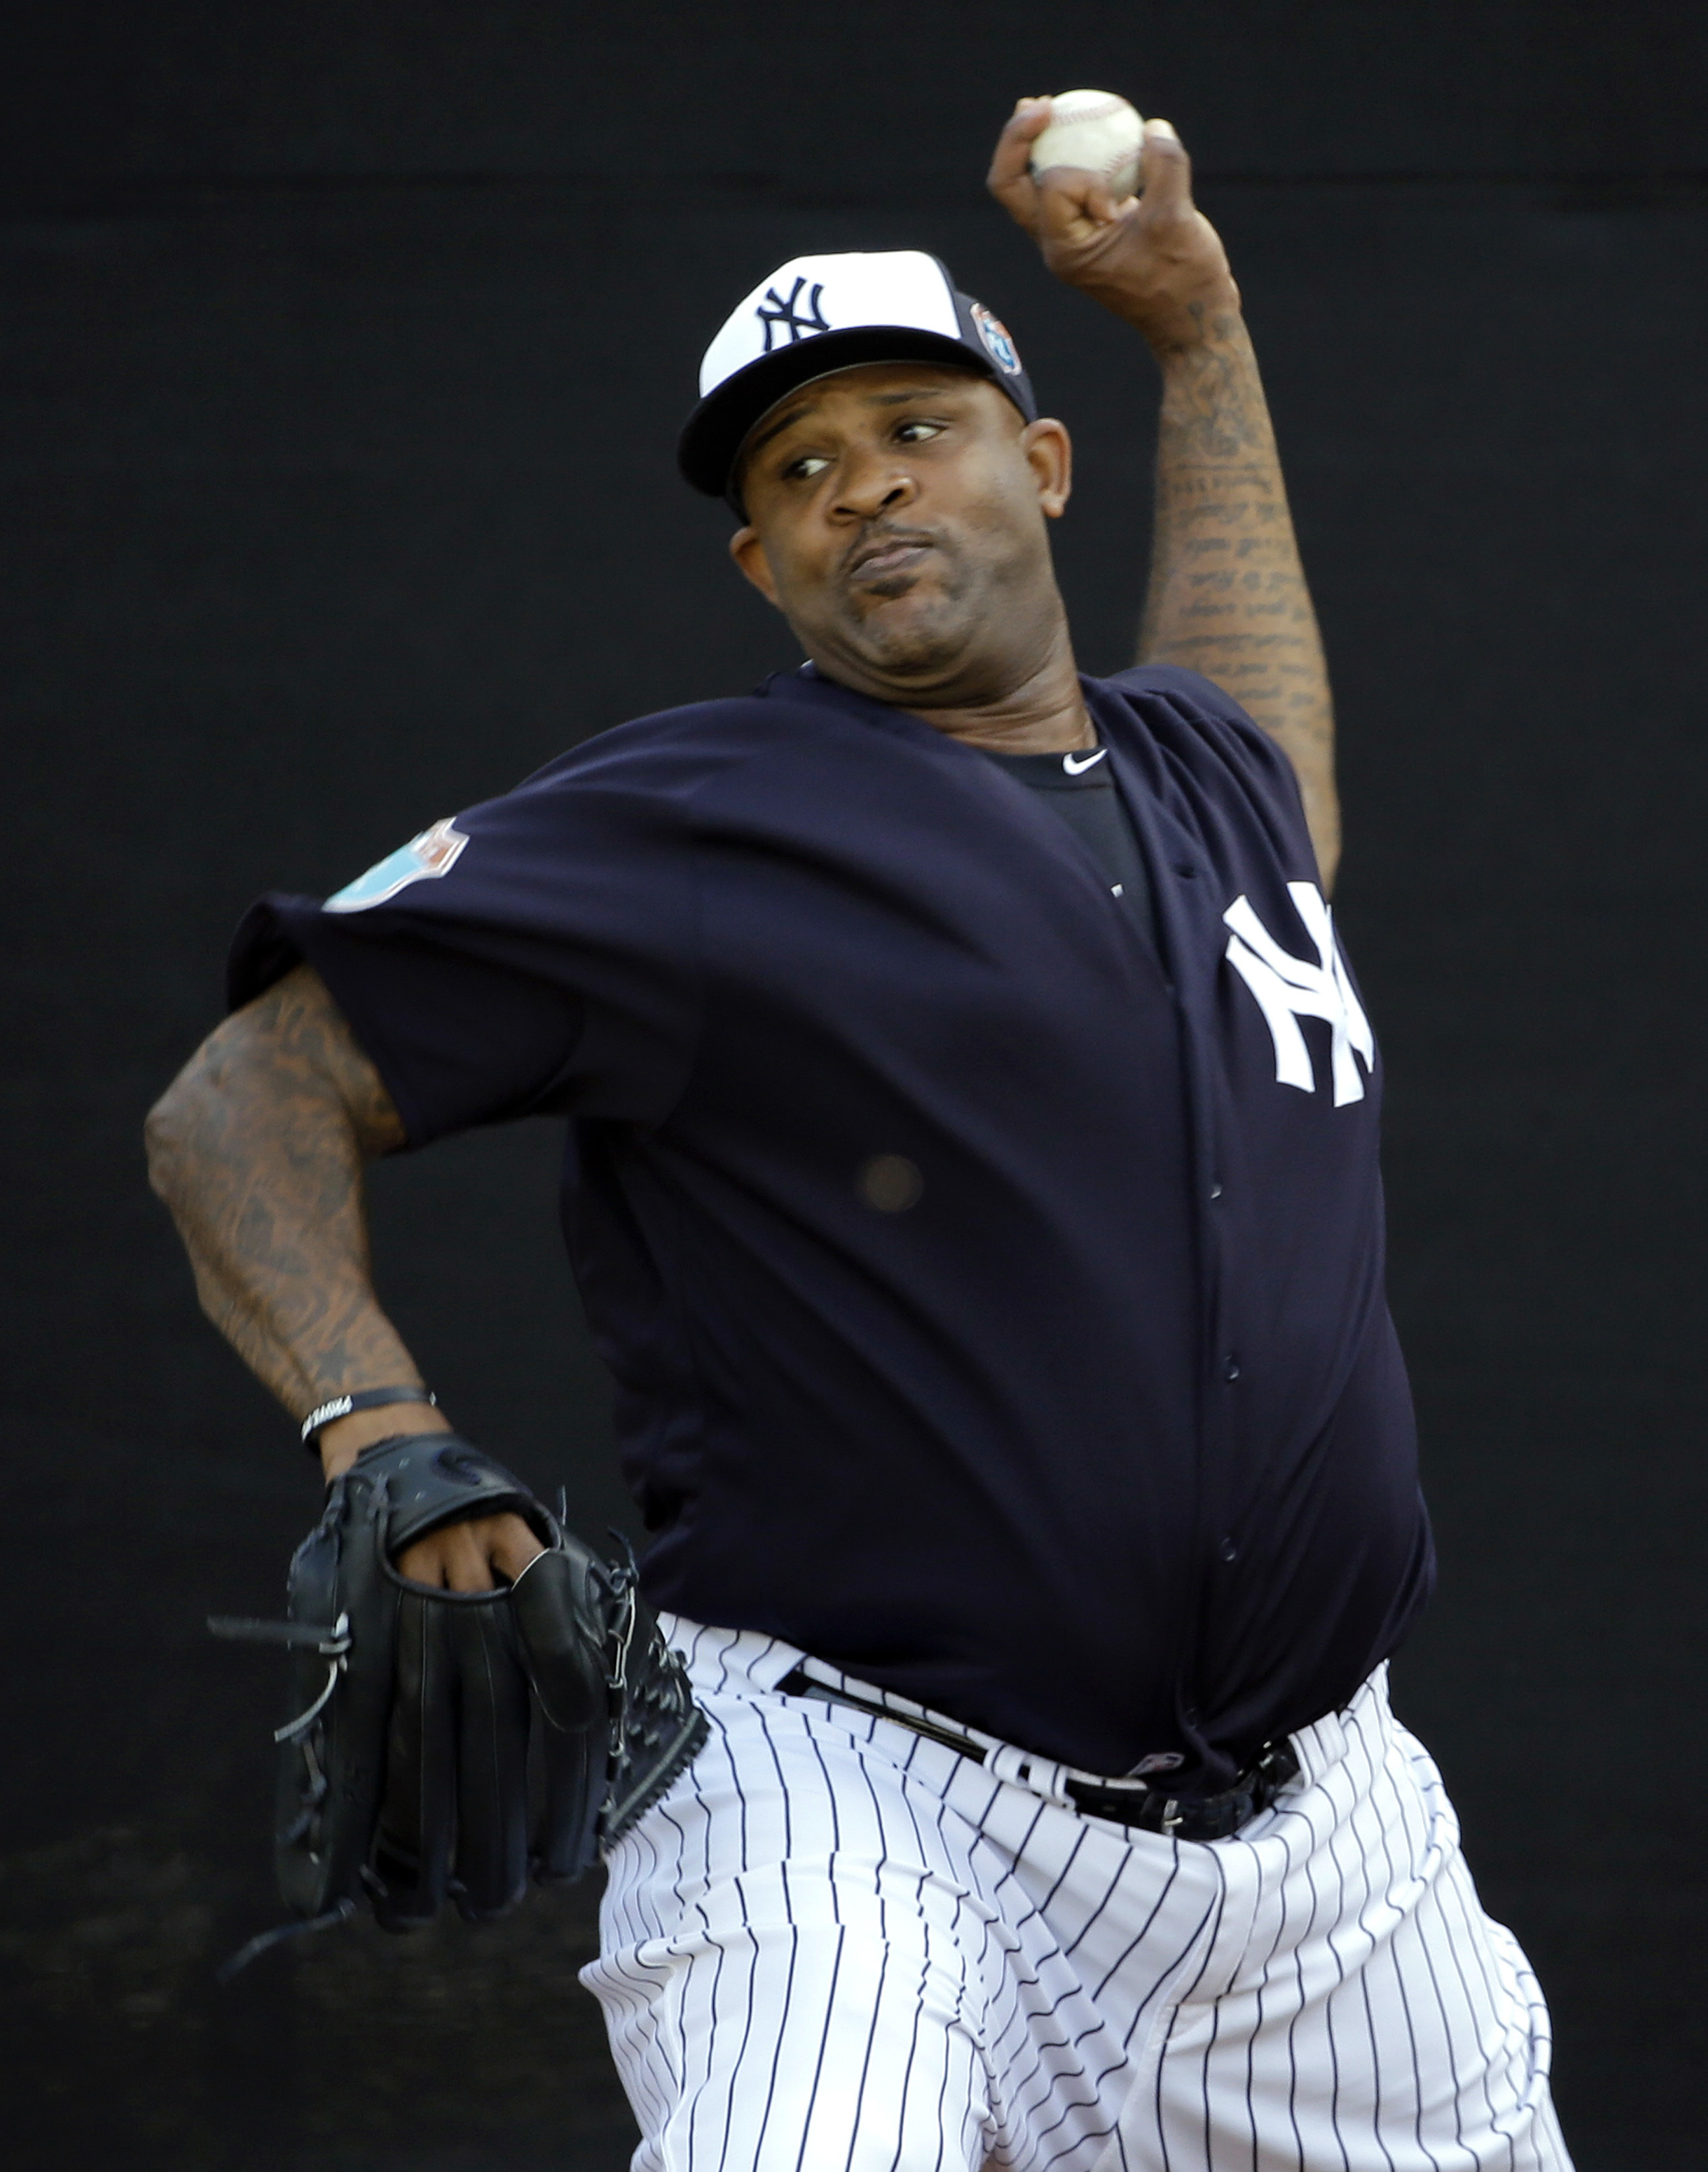 New York Yankees starting pitcher CC Sabathia throws in a bullpen session before a spring training baseball game against the St. Louis Cardinals Thursday, March 31, 2016, in Tampa, Fla. (AP Photo/Chris O'Meara)